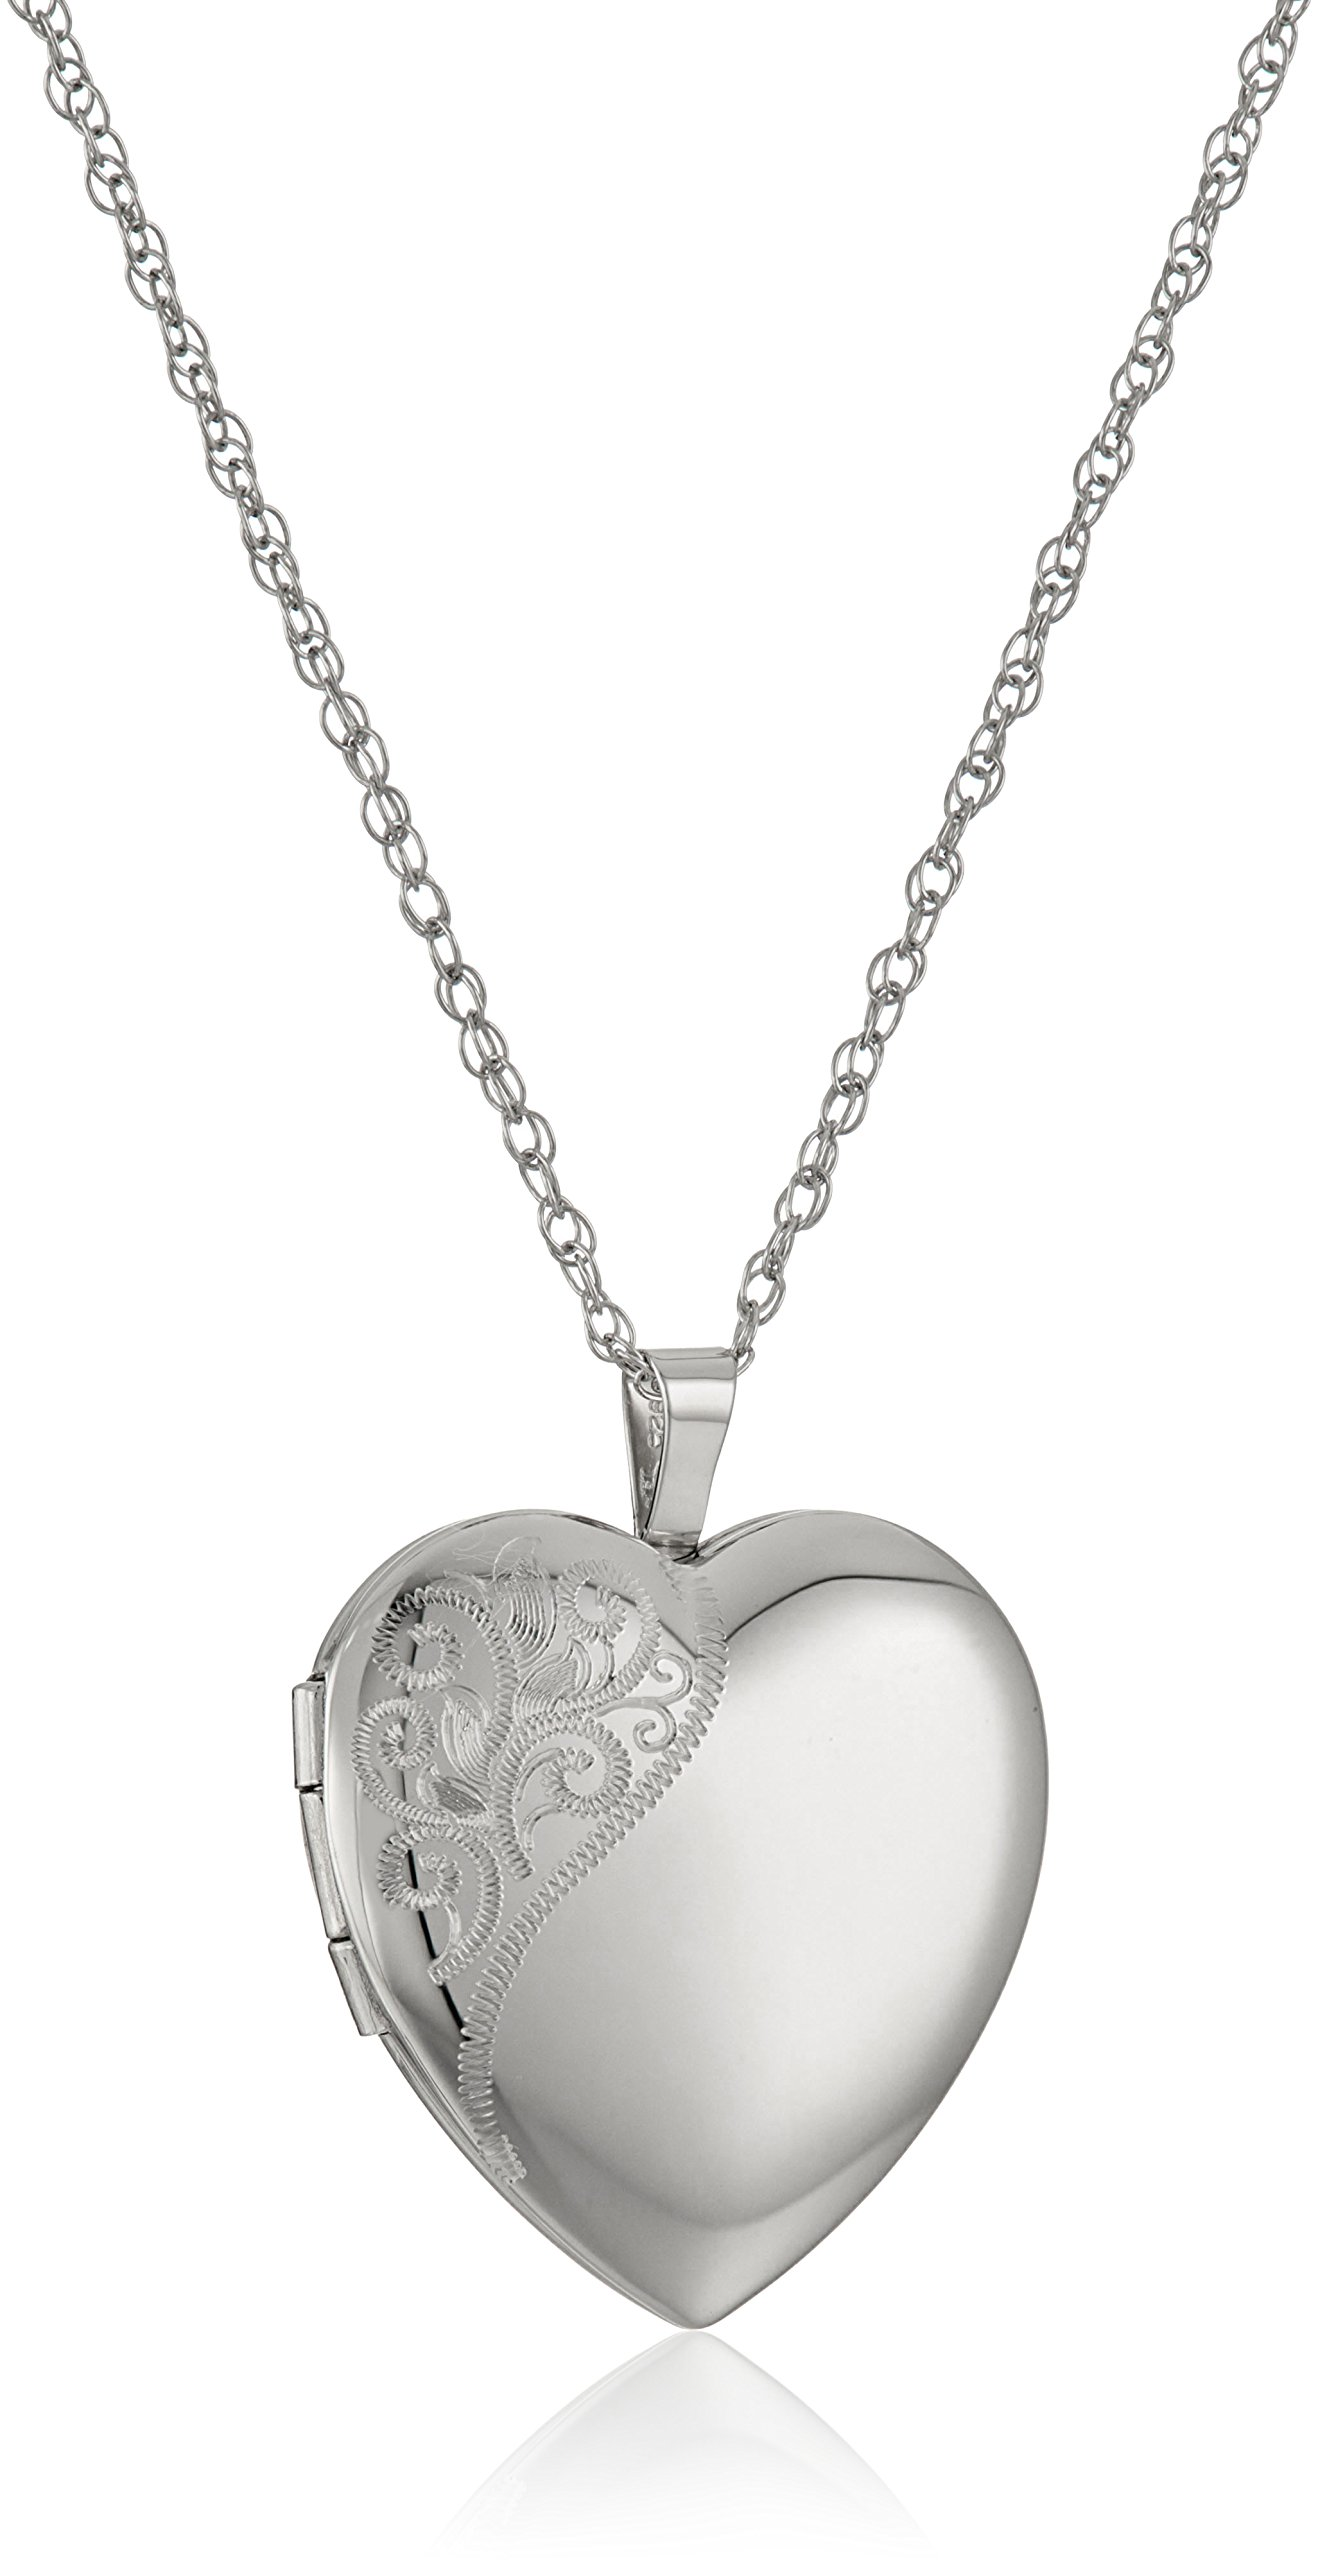 Sterling Silver Large Hand Engraved Floral Heart Pendant with Satin and Polished Finish Locket Necklace, 20''